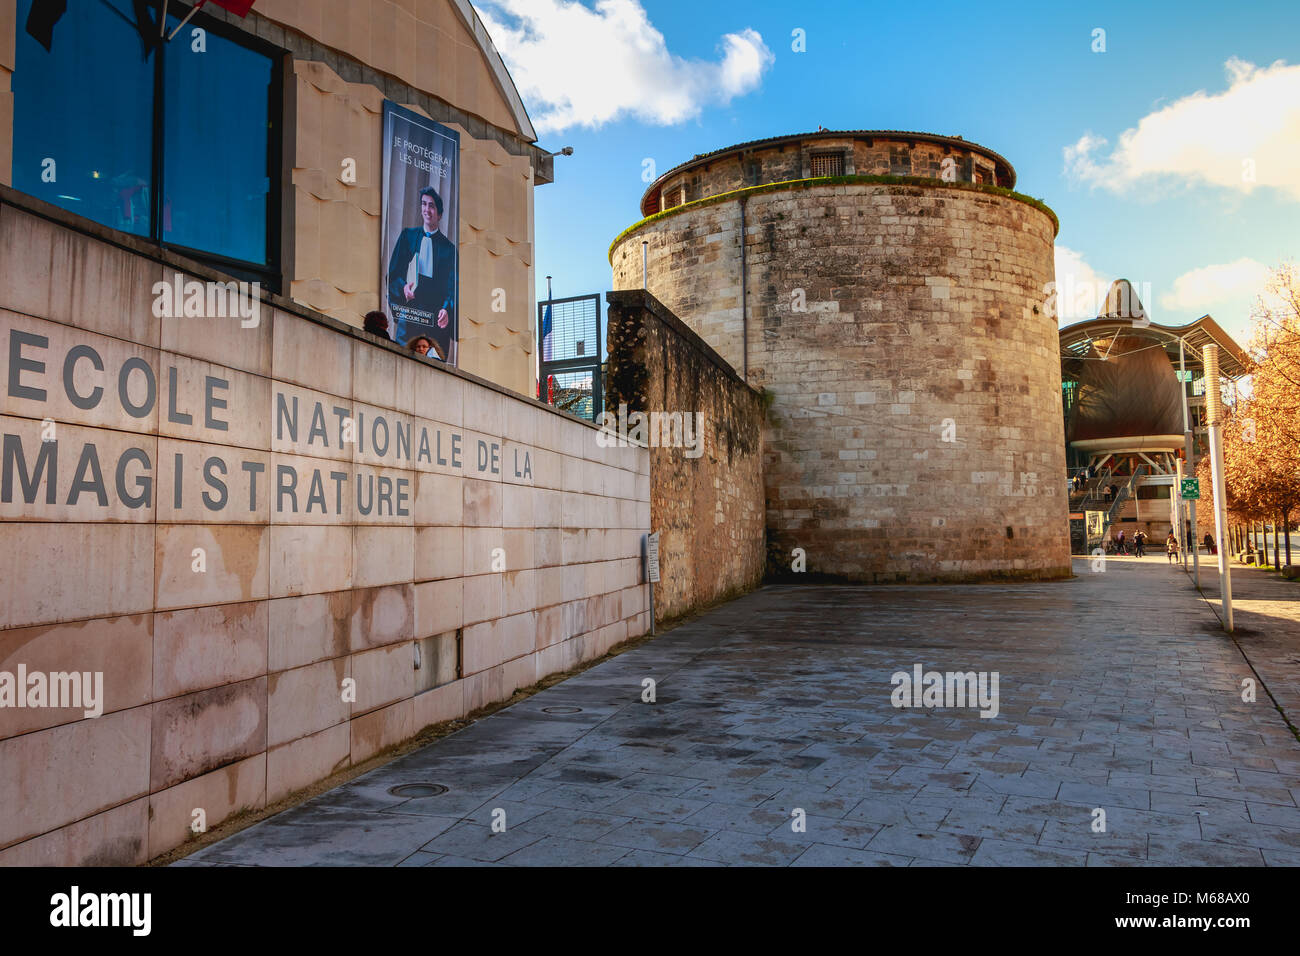 Bordeaux, France - January 26, 2018 : architectural detail of the National School of Magistracy on a winter day - Stock Image